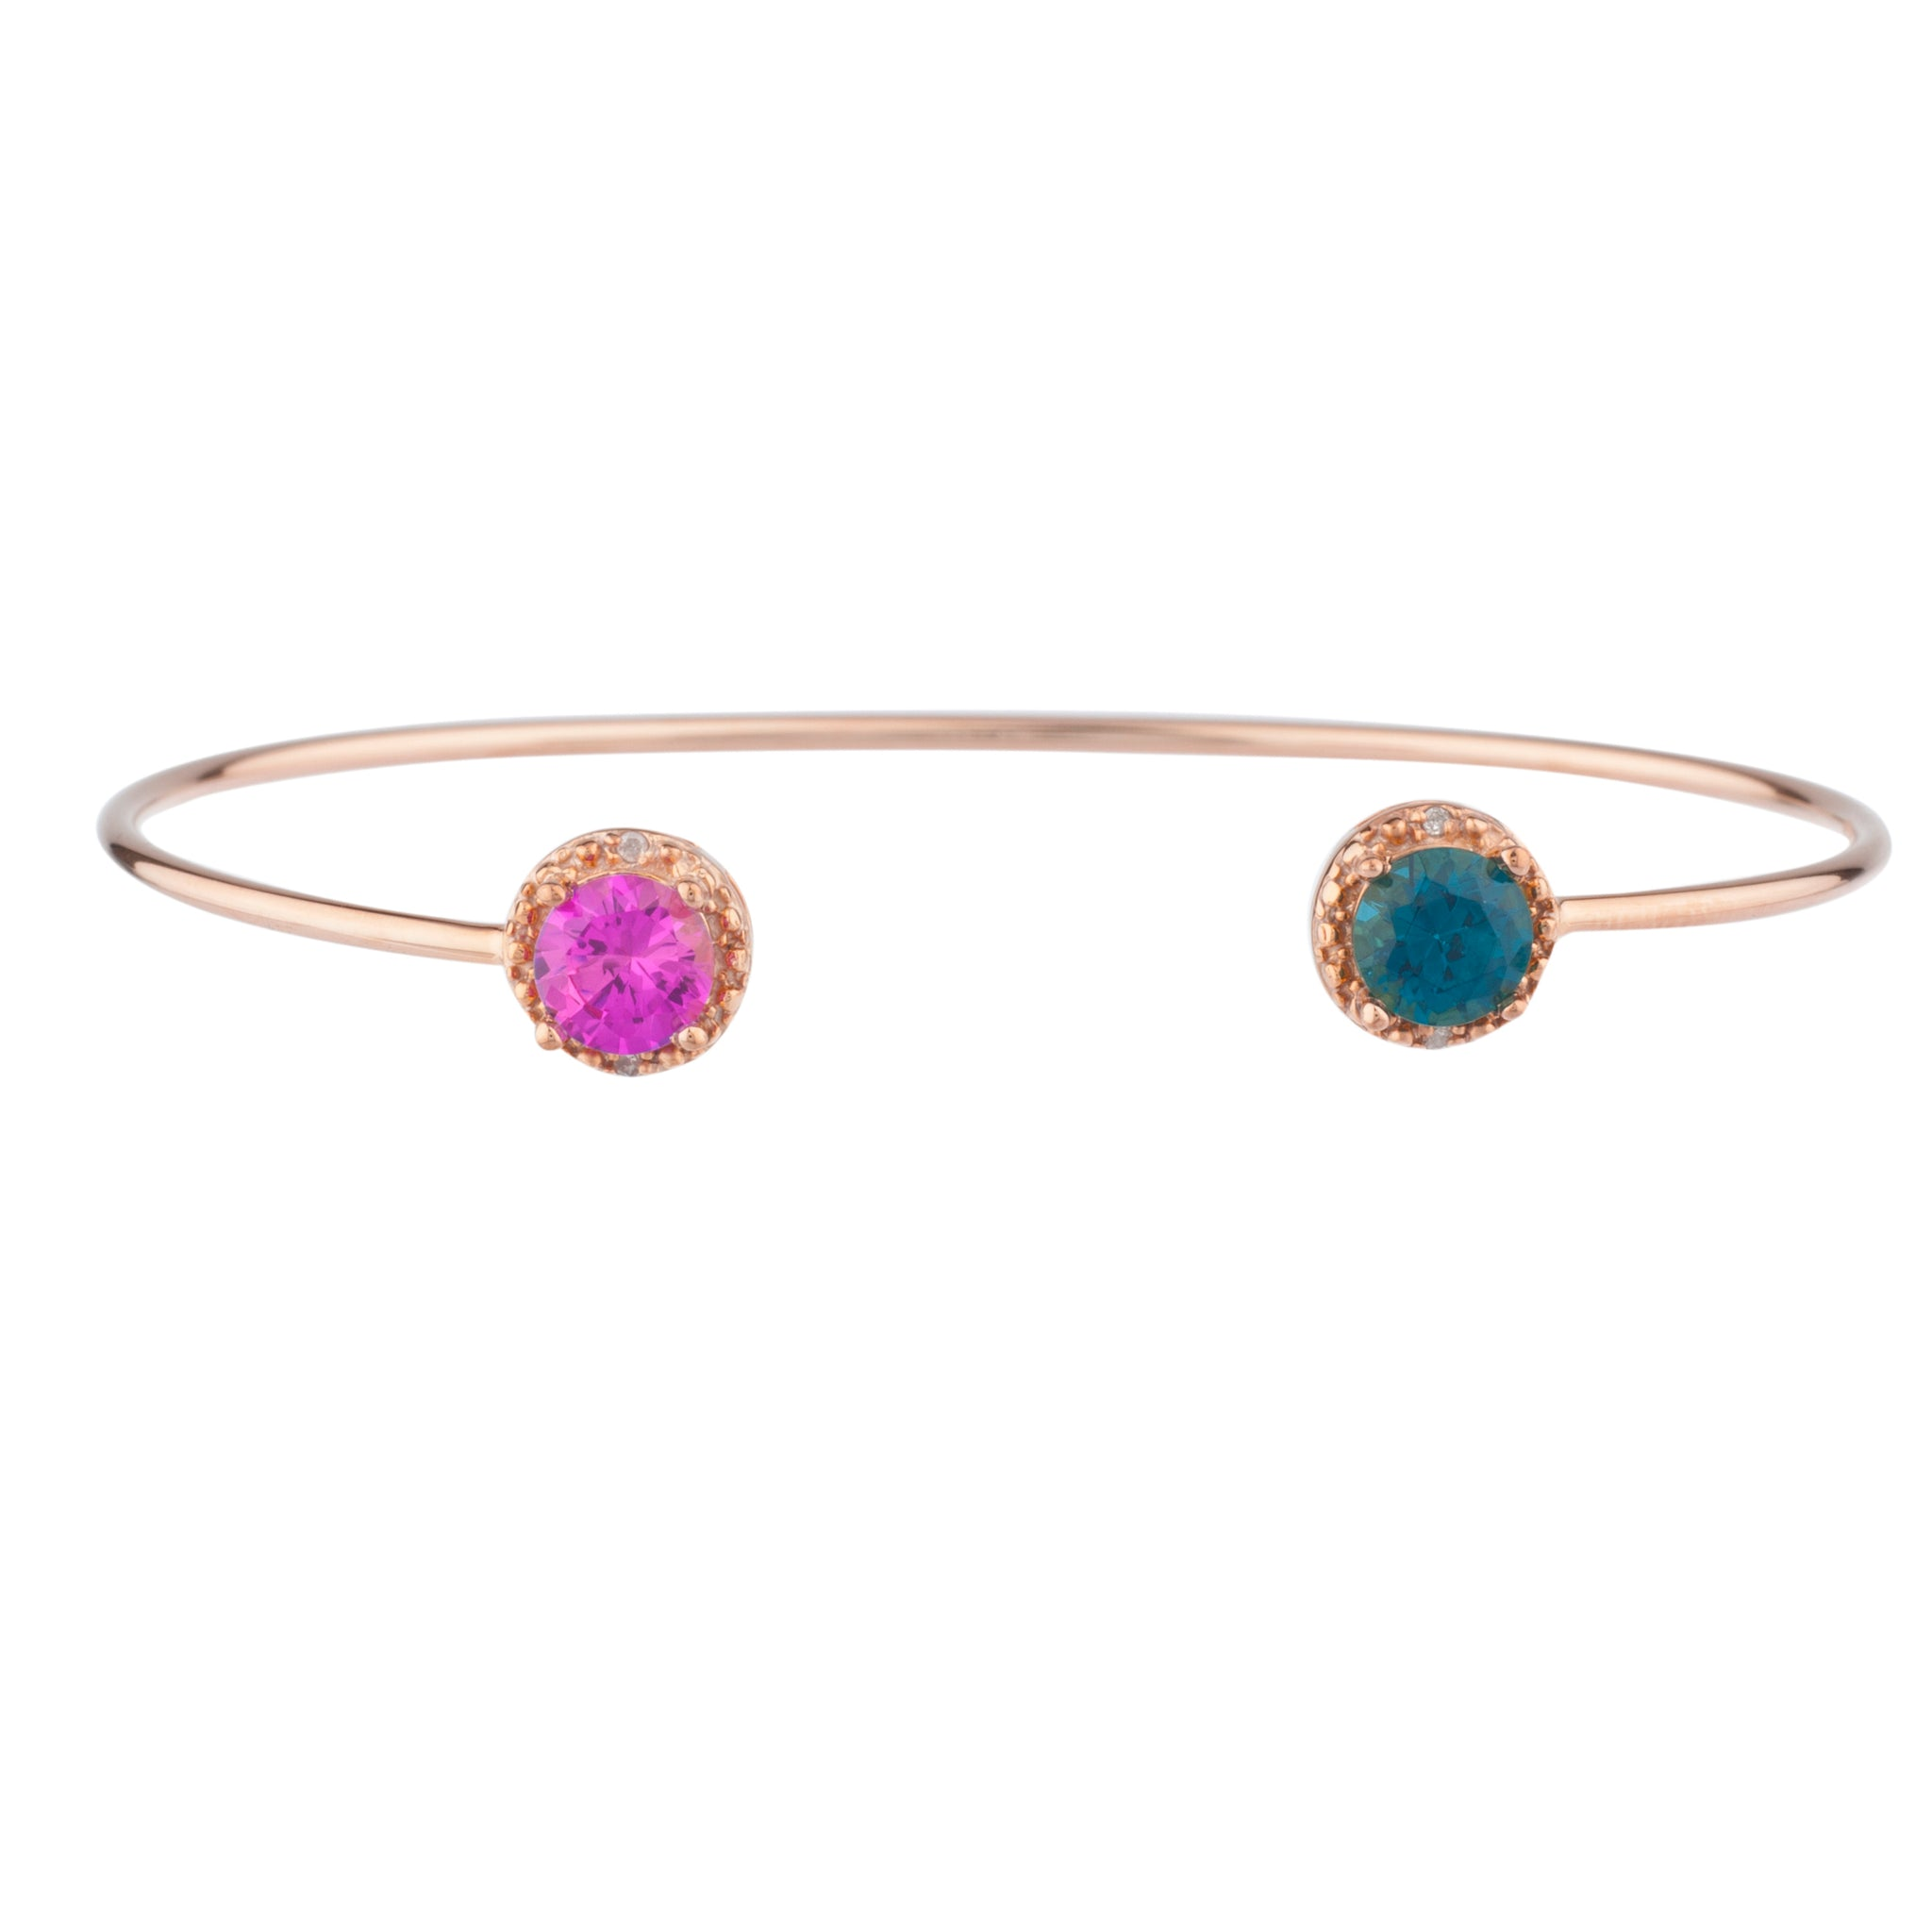 Pink Sapphire & London Blue Topaz Diamond Bangle Round Bracelet 14Kt Rose Gold Plated Over .925 Sterling Silver